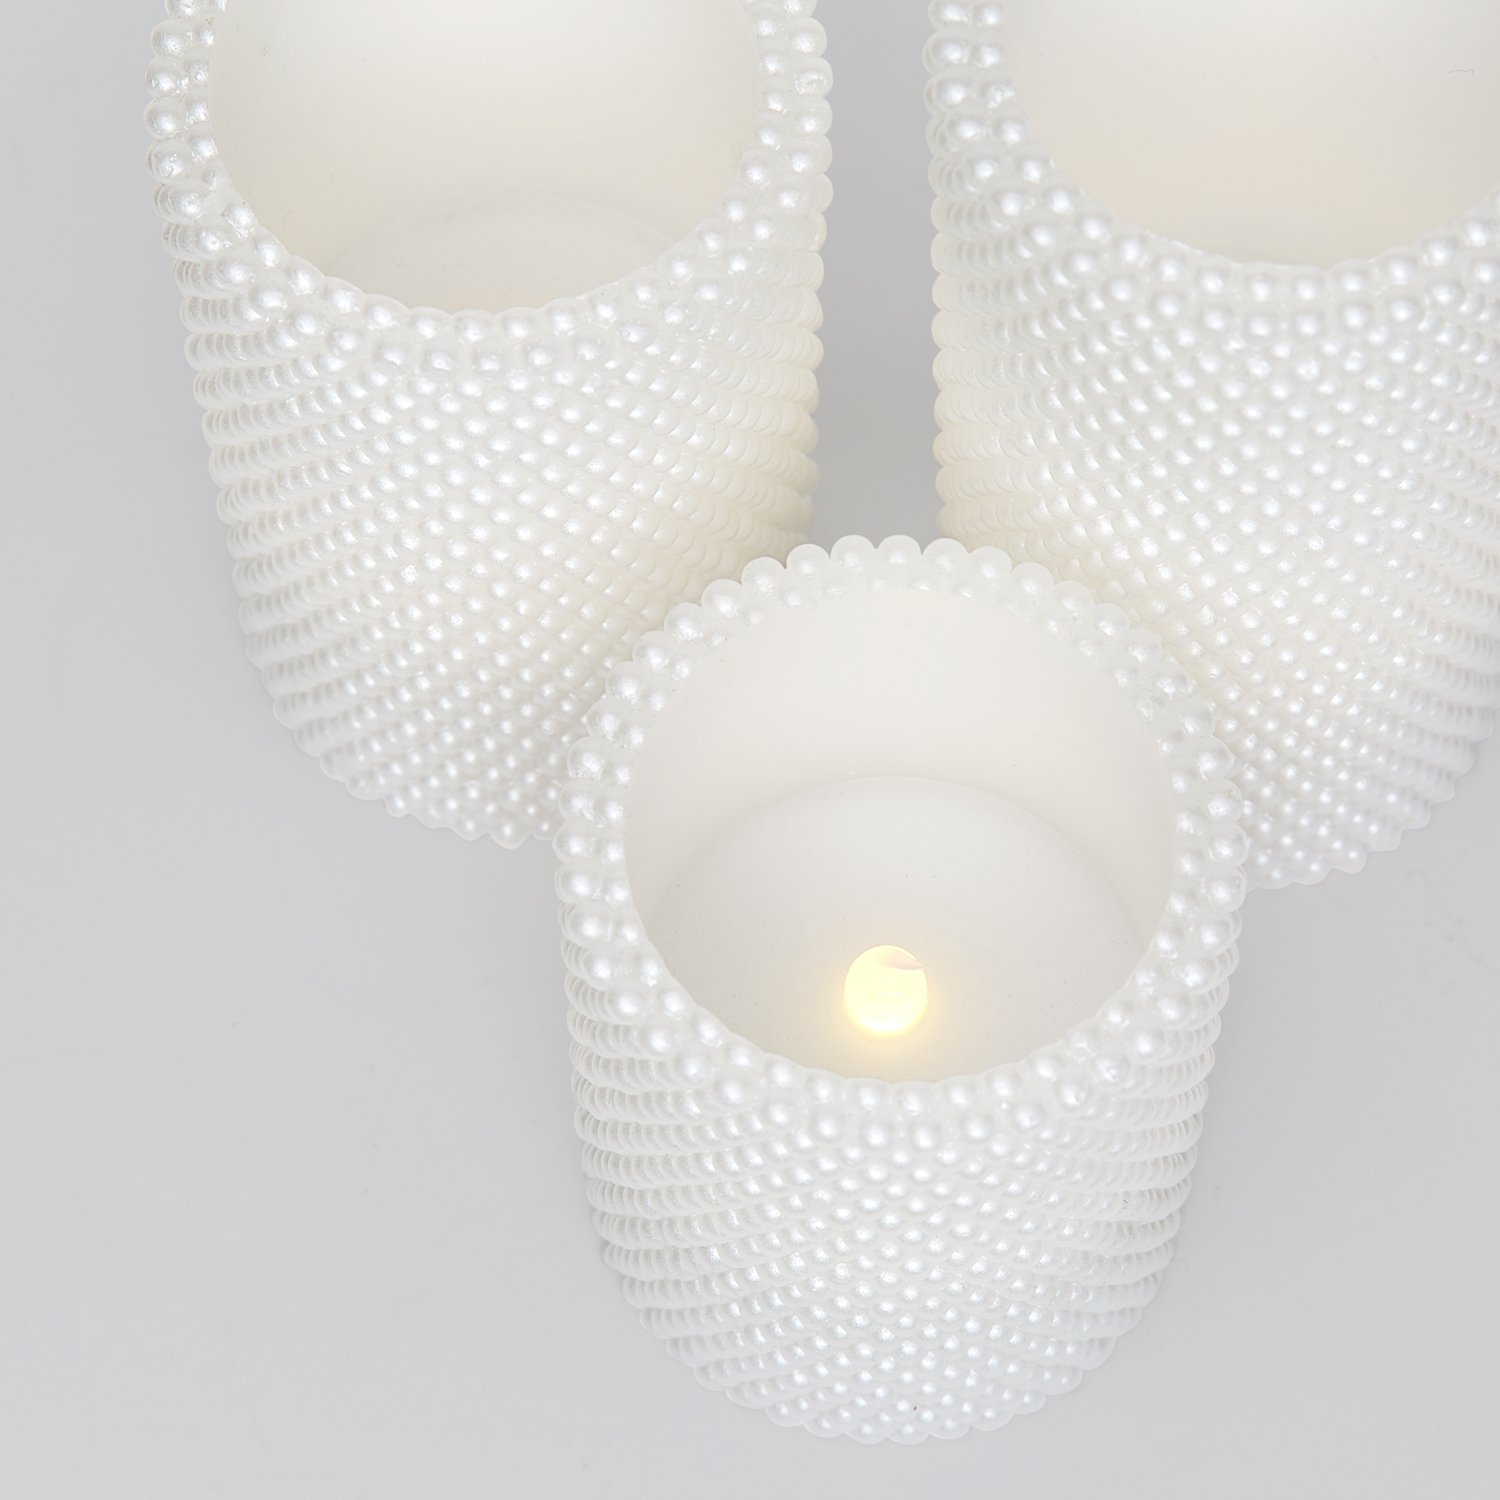 Decorative Textured Flameless Candles Set with Remote, Flickering Pearl Candle by LampLust, 4/8 Hr Timer, Real Wax, White LED Glow, Indoor use - Set of 3 by LampLust (Image #3)